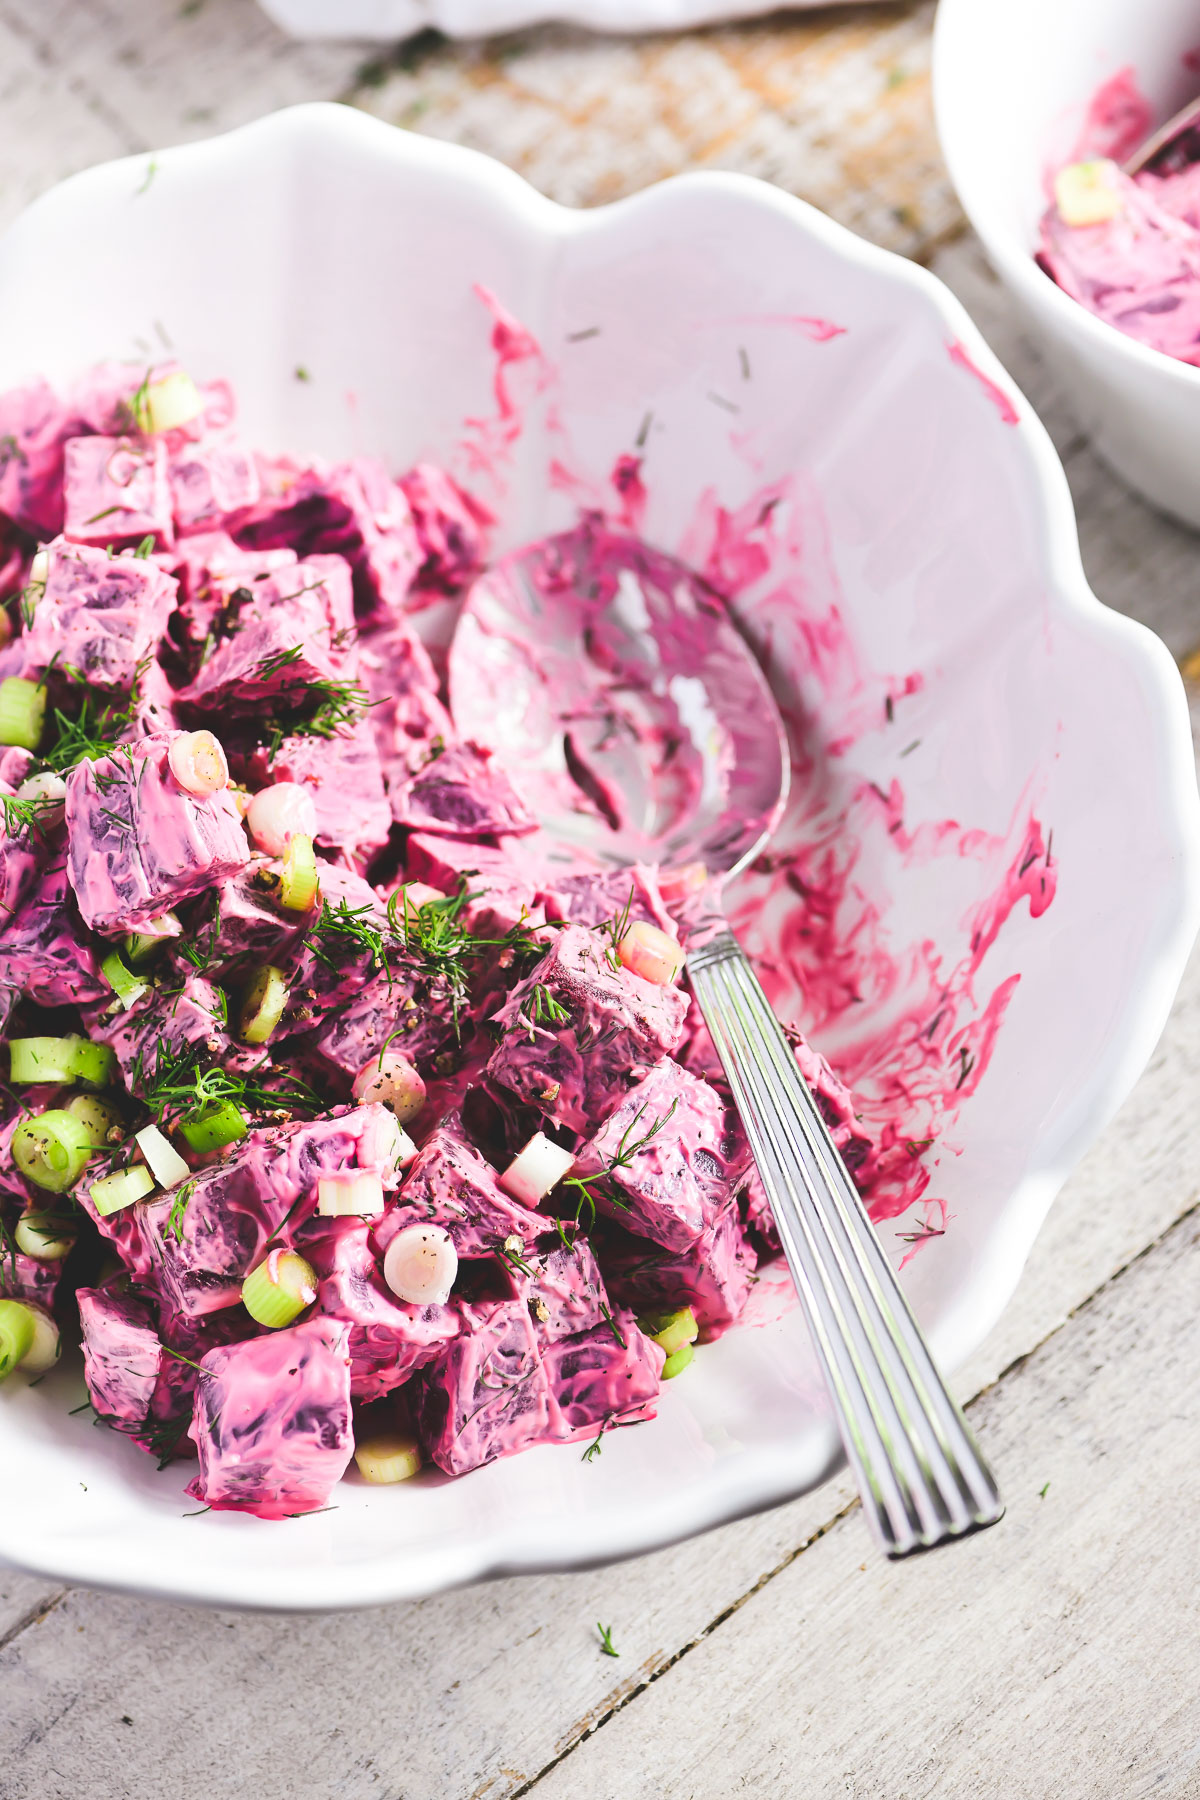 Pretty pink beet salad in a white bowl